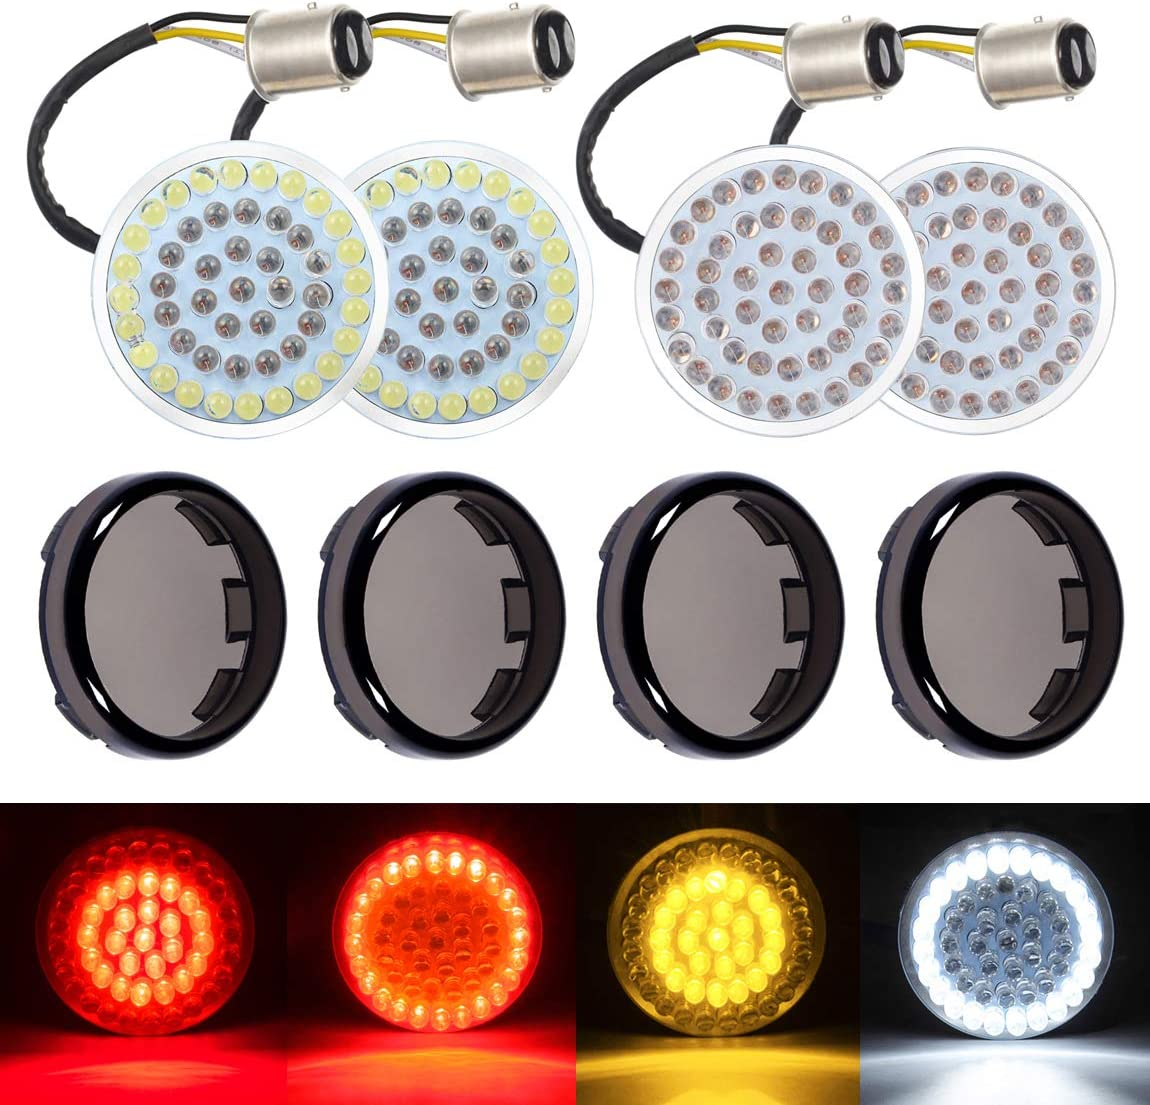 PBYMT LED Turn Signal Light Bulb 1157 Front Rear Running Tail Brake Light 2 Inches Bullet Smoke Lens Cover Kit Compatible for Harley Dyna Touring Street Glide Road King Electra Glide 1986-2020